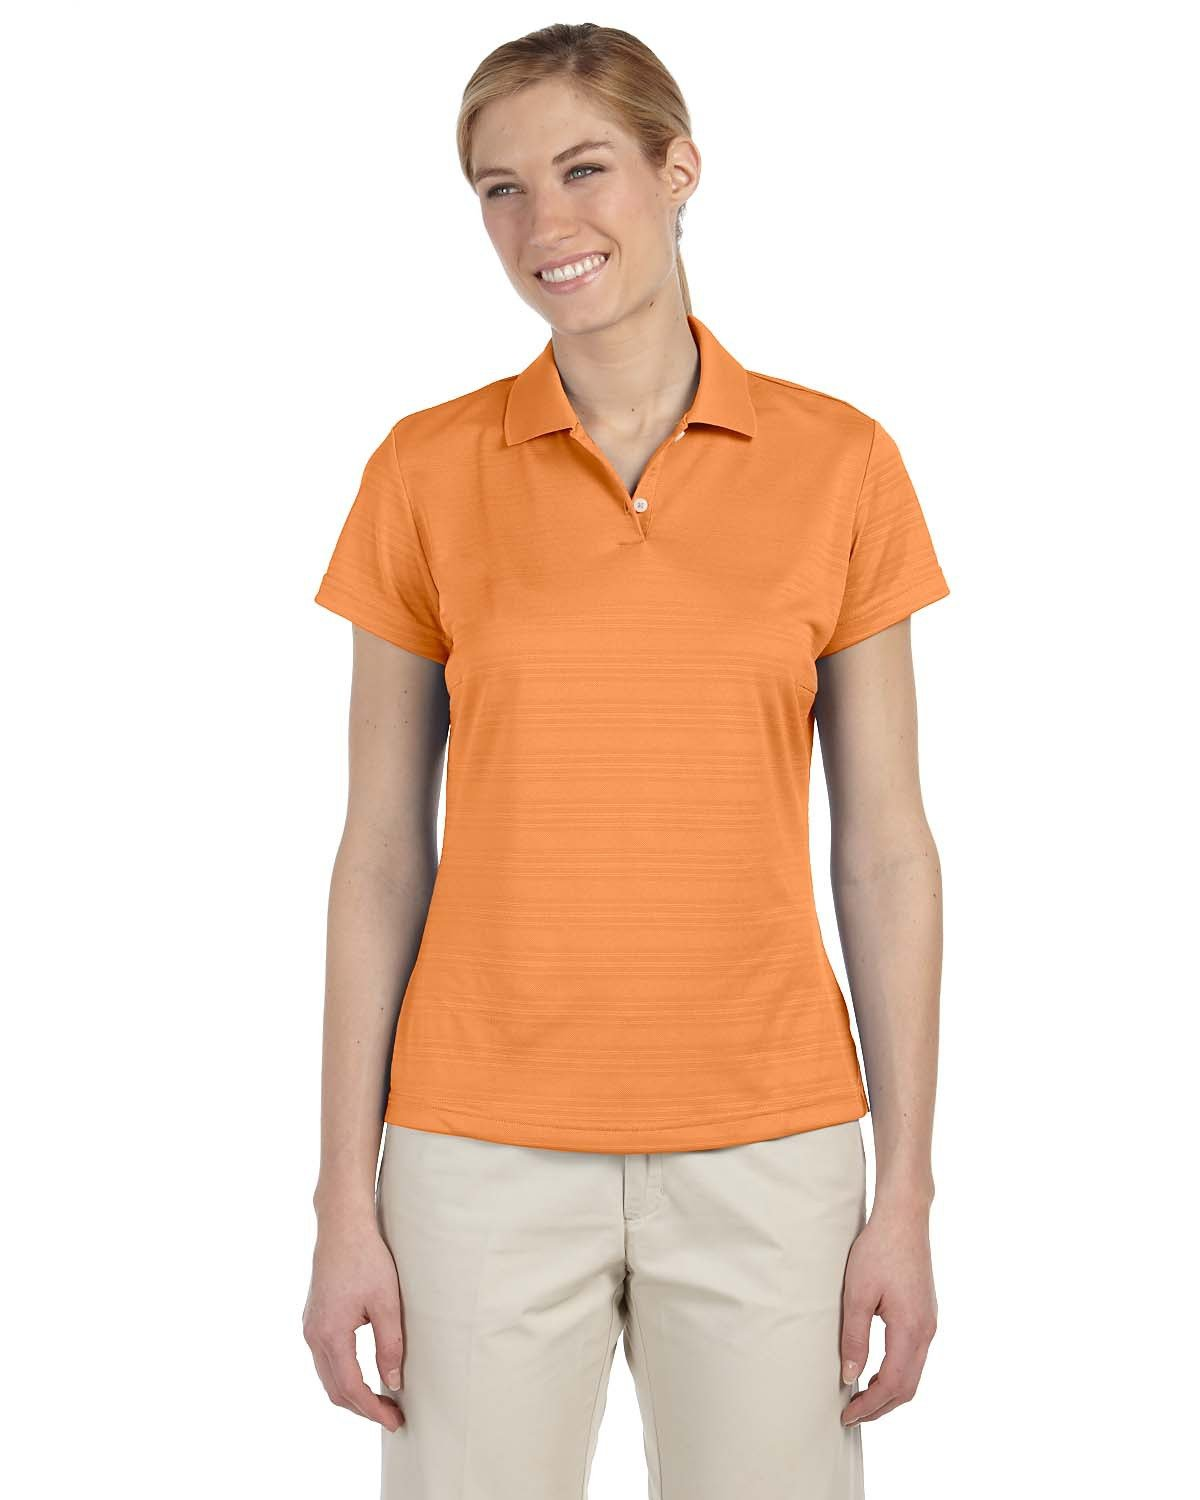 Product detail for Golf polo shirts for women